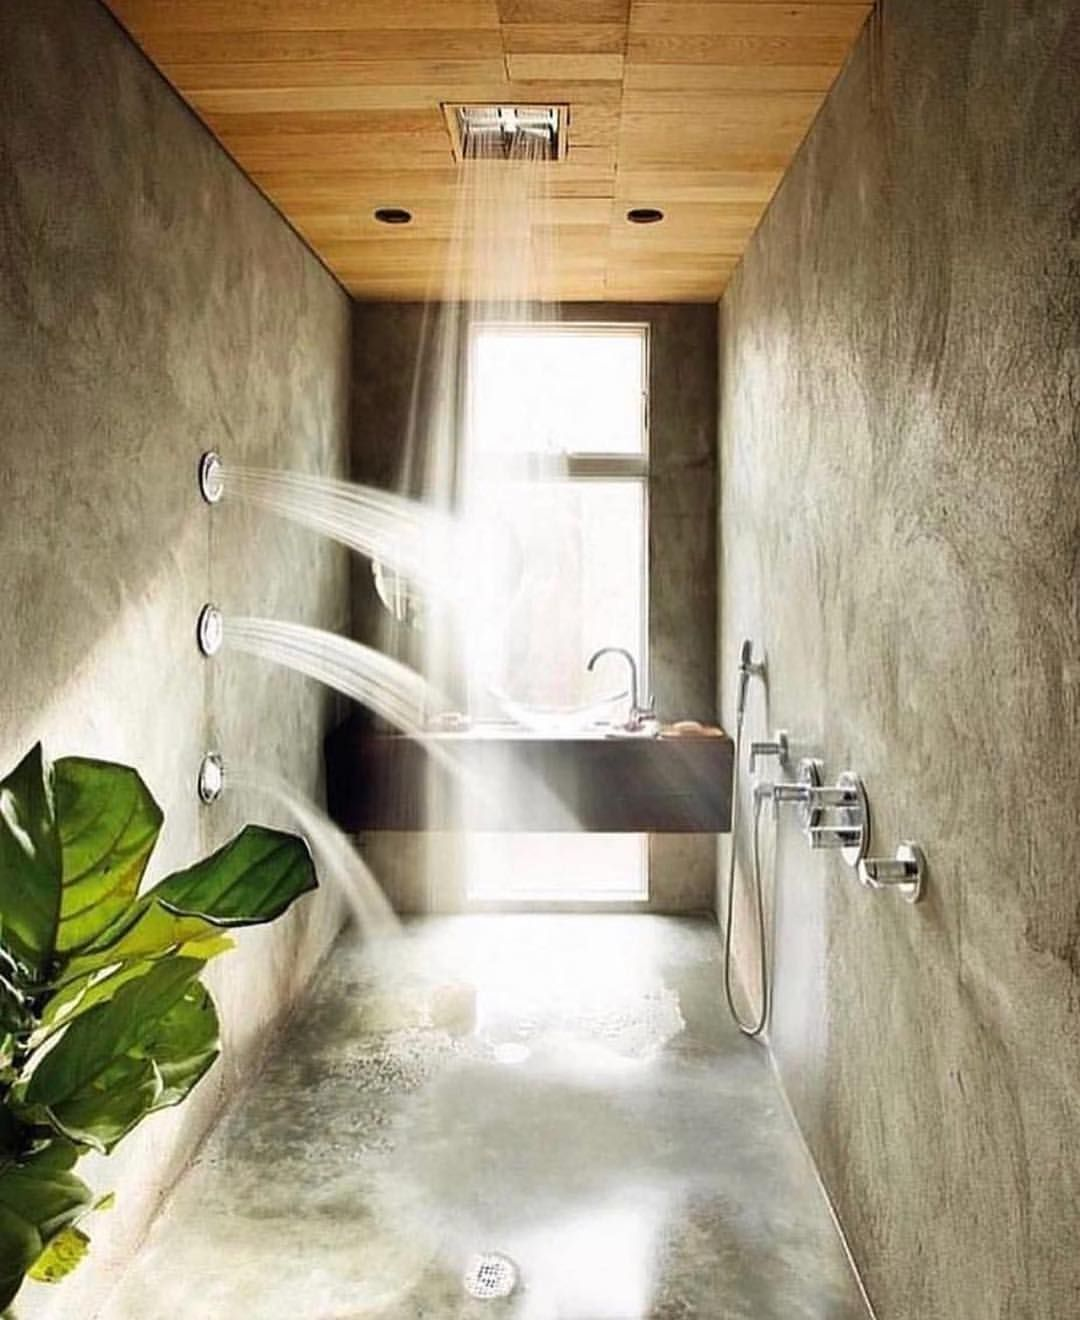 Designer Badezimmer What Do You Think About This Shower My Minimal Design